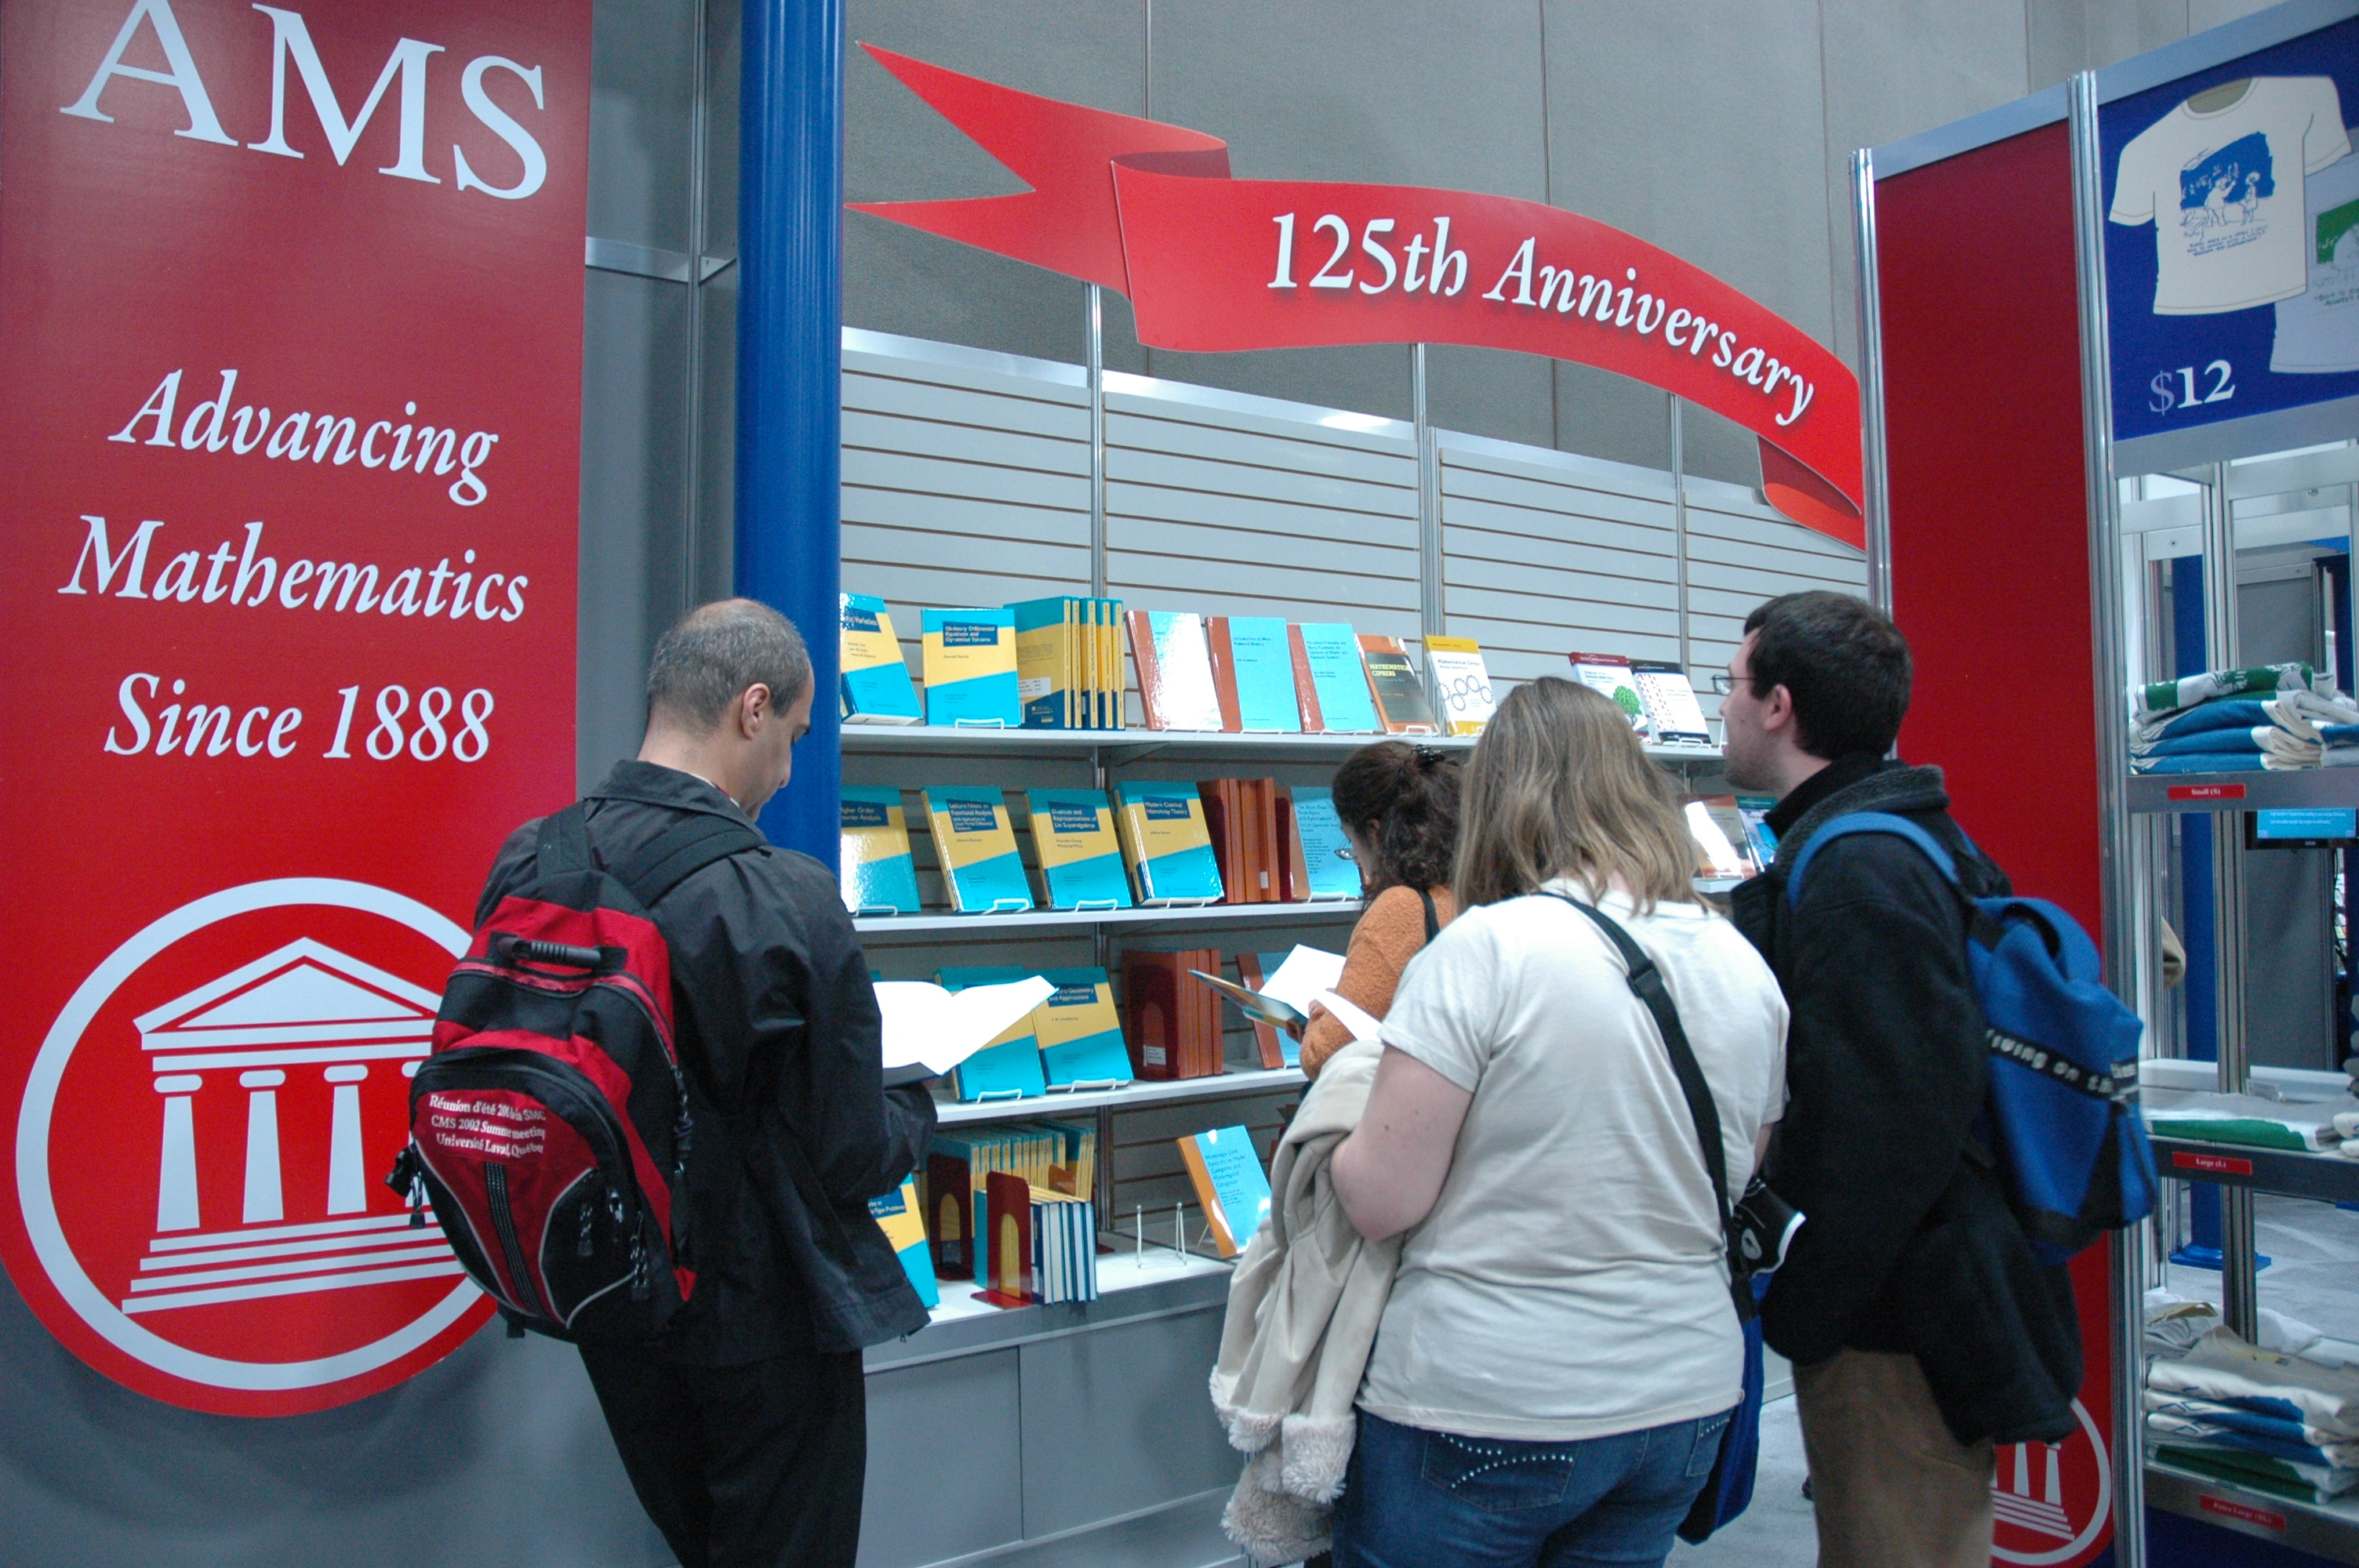 AMS exhibit at JMM 2013